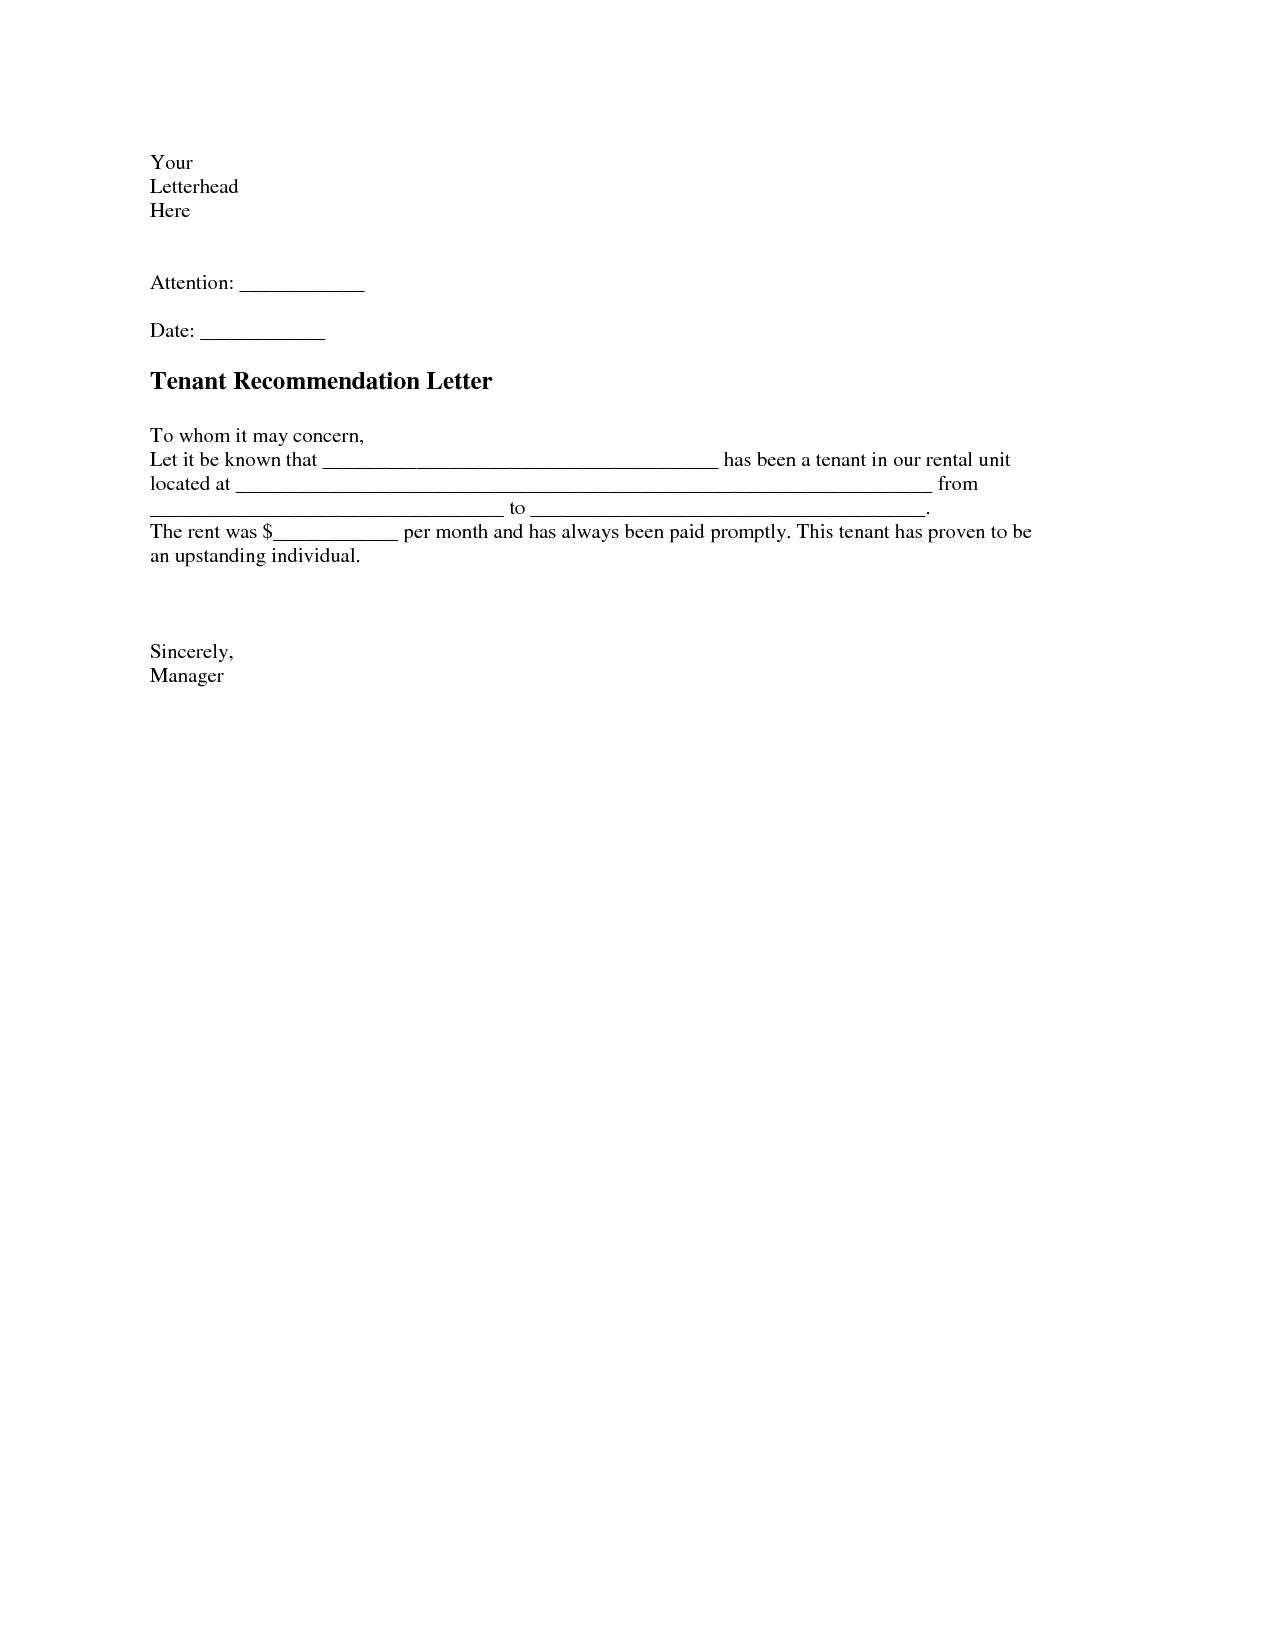 Tenancy Notice Letter Template - Tenant Re Mendation Letter A Tenant Re Mendation Letter is